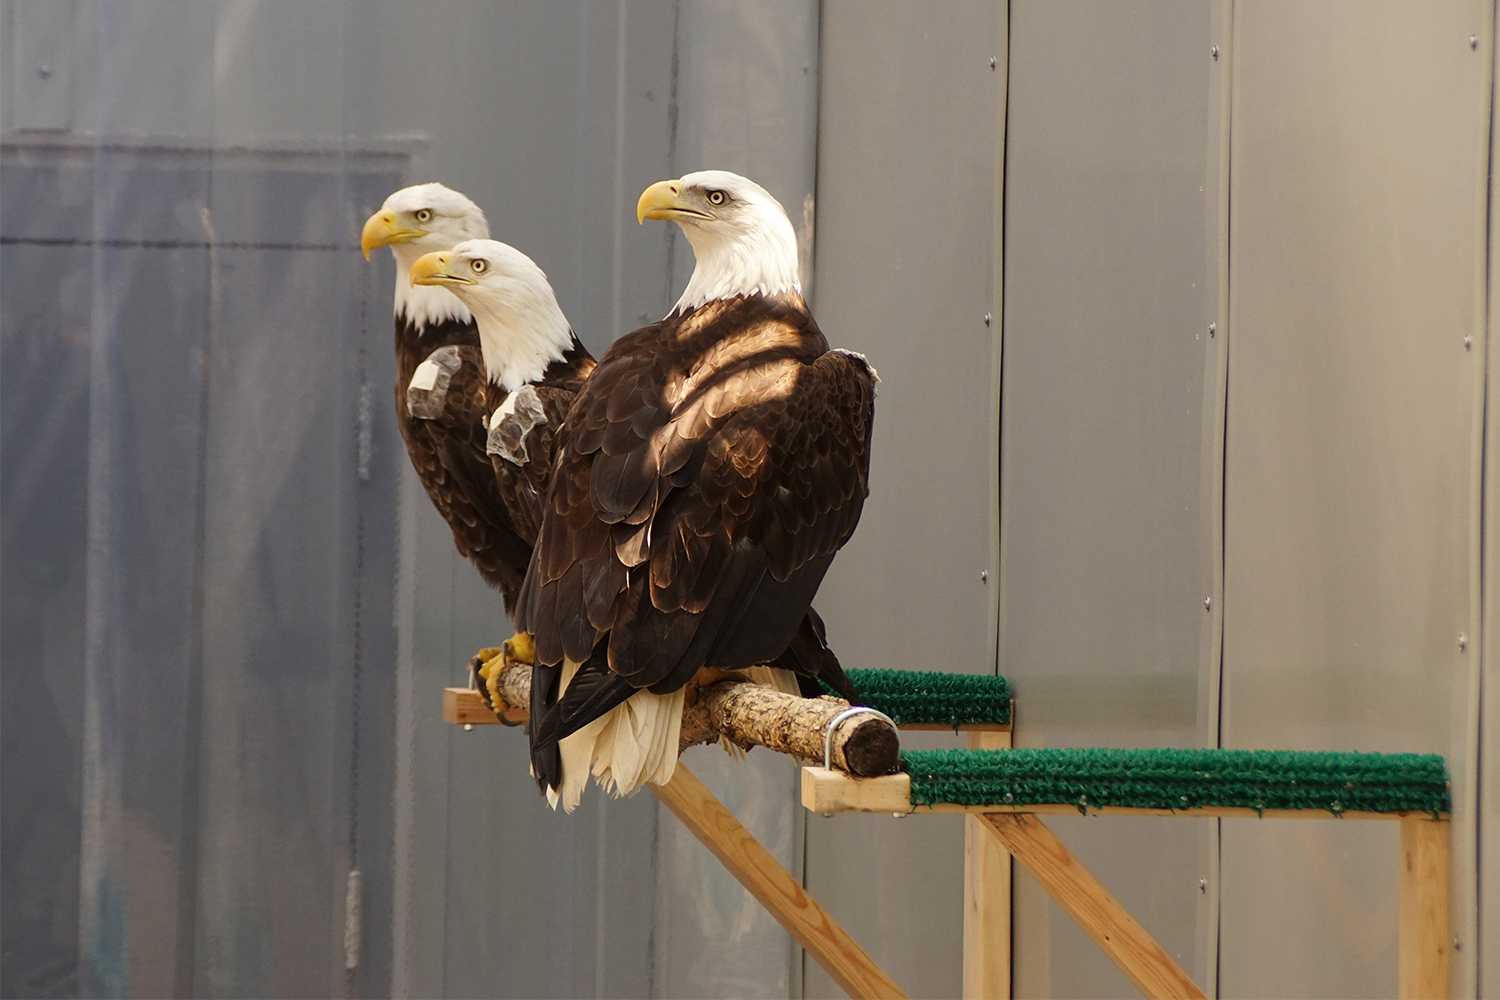 Three bald eagles in an outdoor enclosure at the University of Minnesota Raptor Center